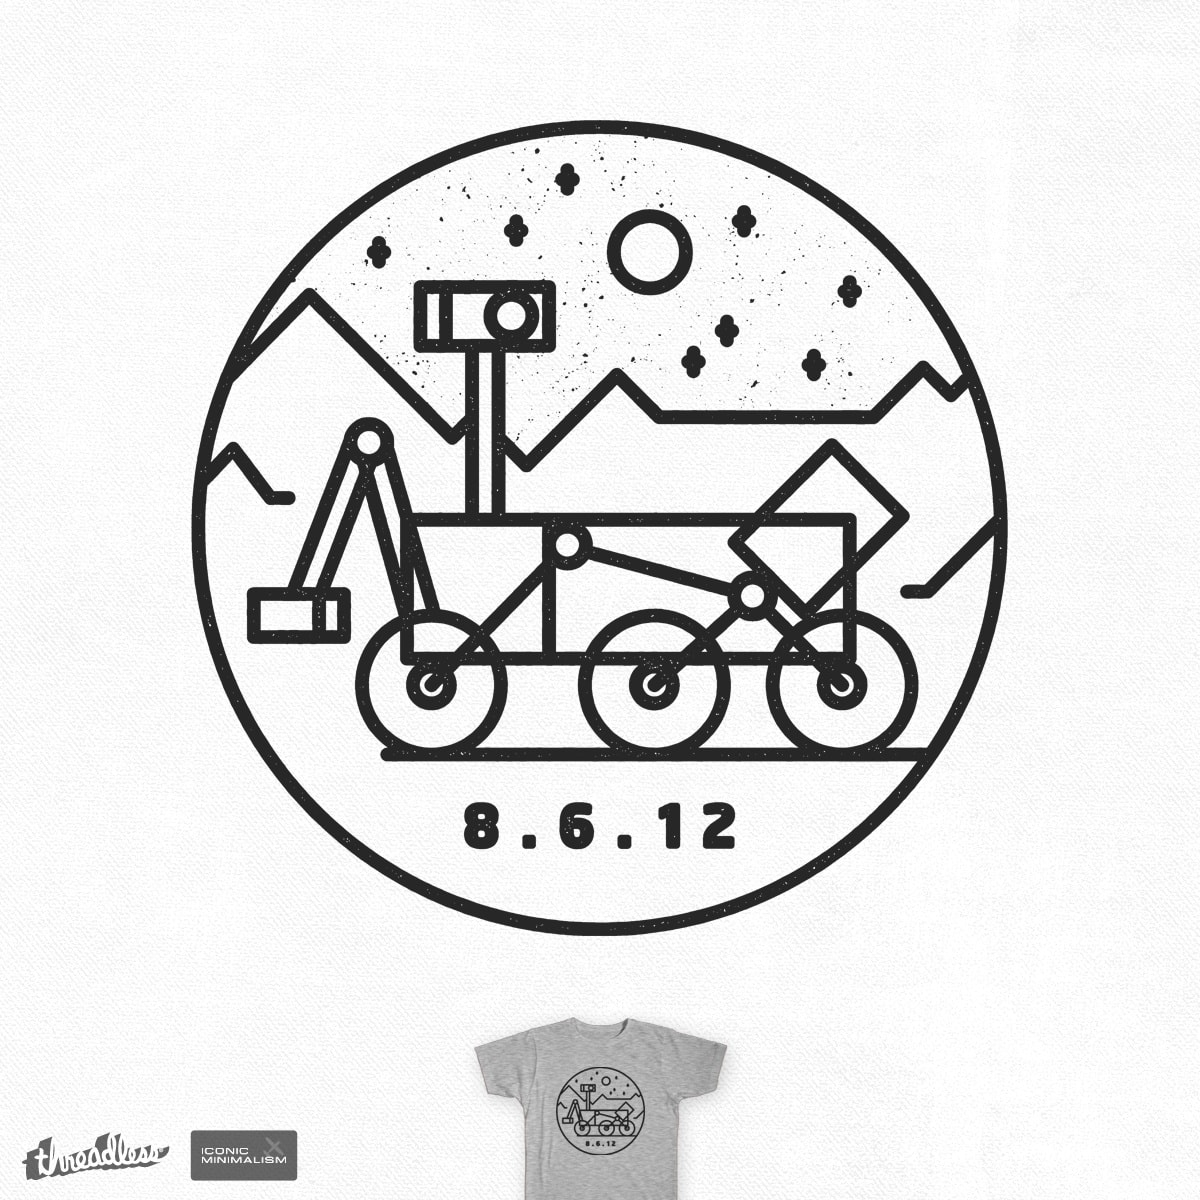 Stay Curious by Gintron on Threadless